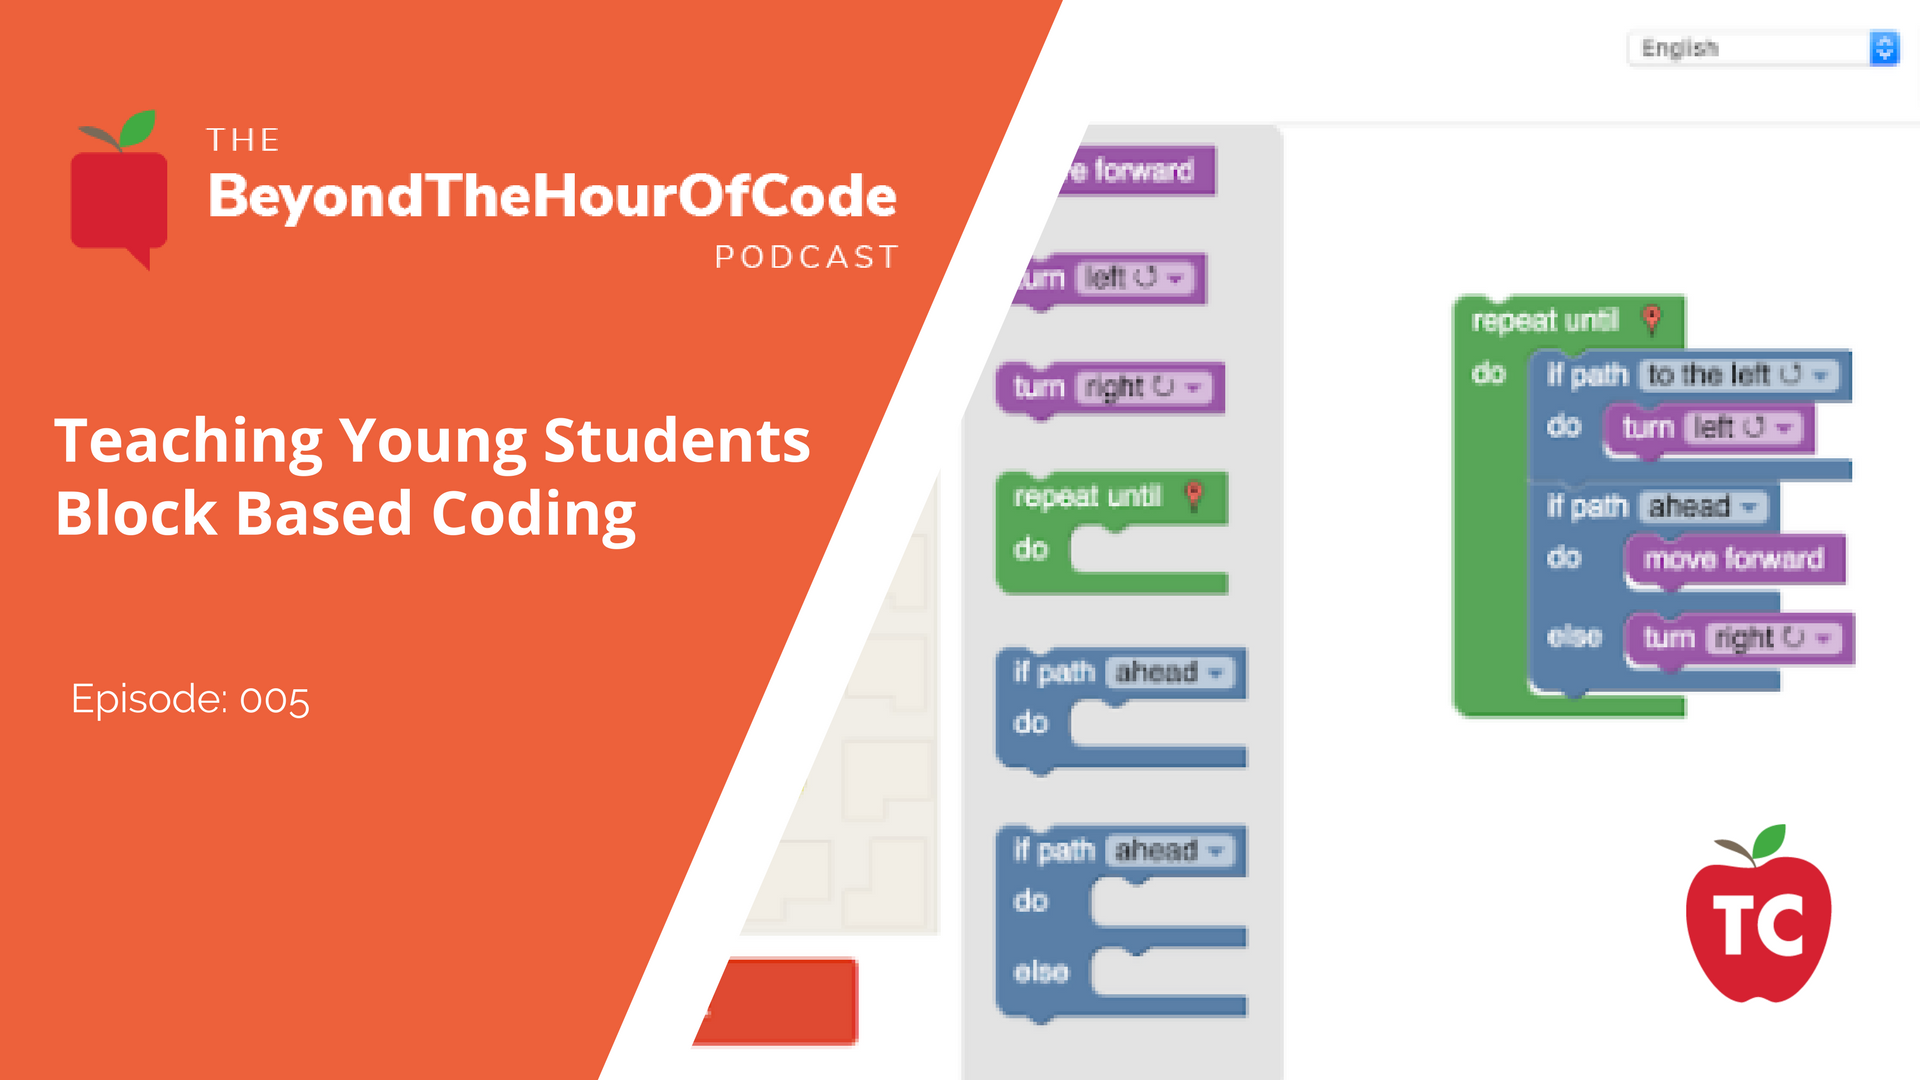 Teaching Block Based Coding to Young Students